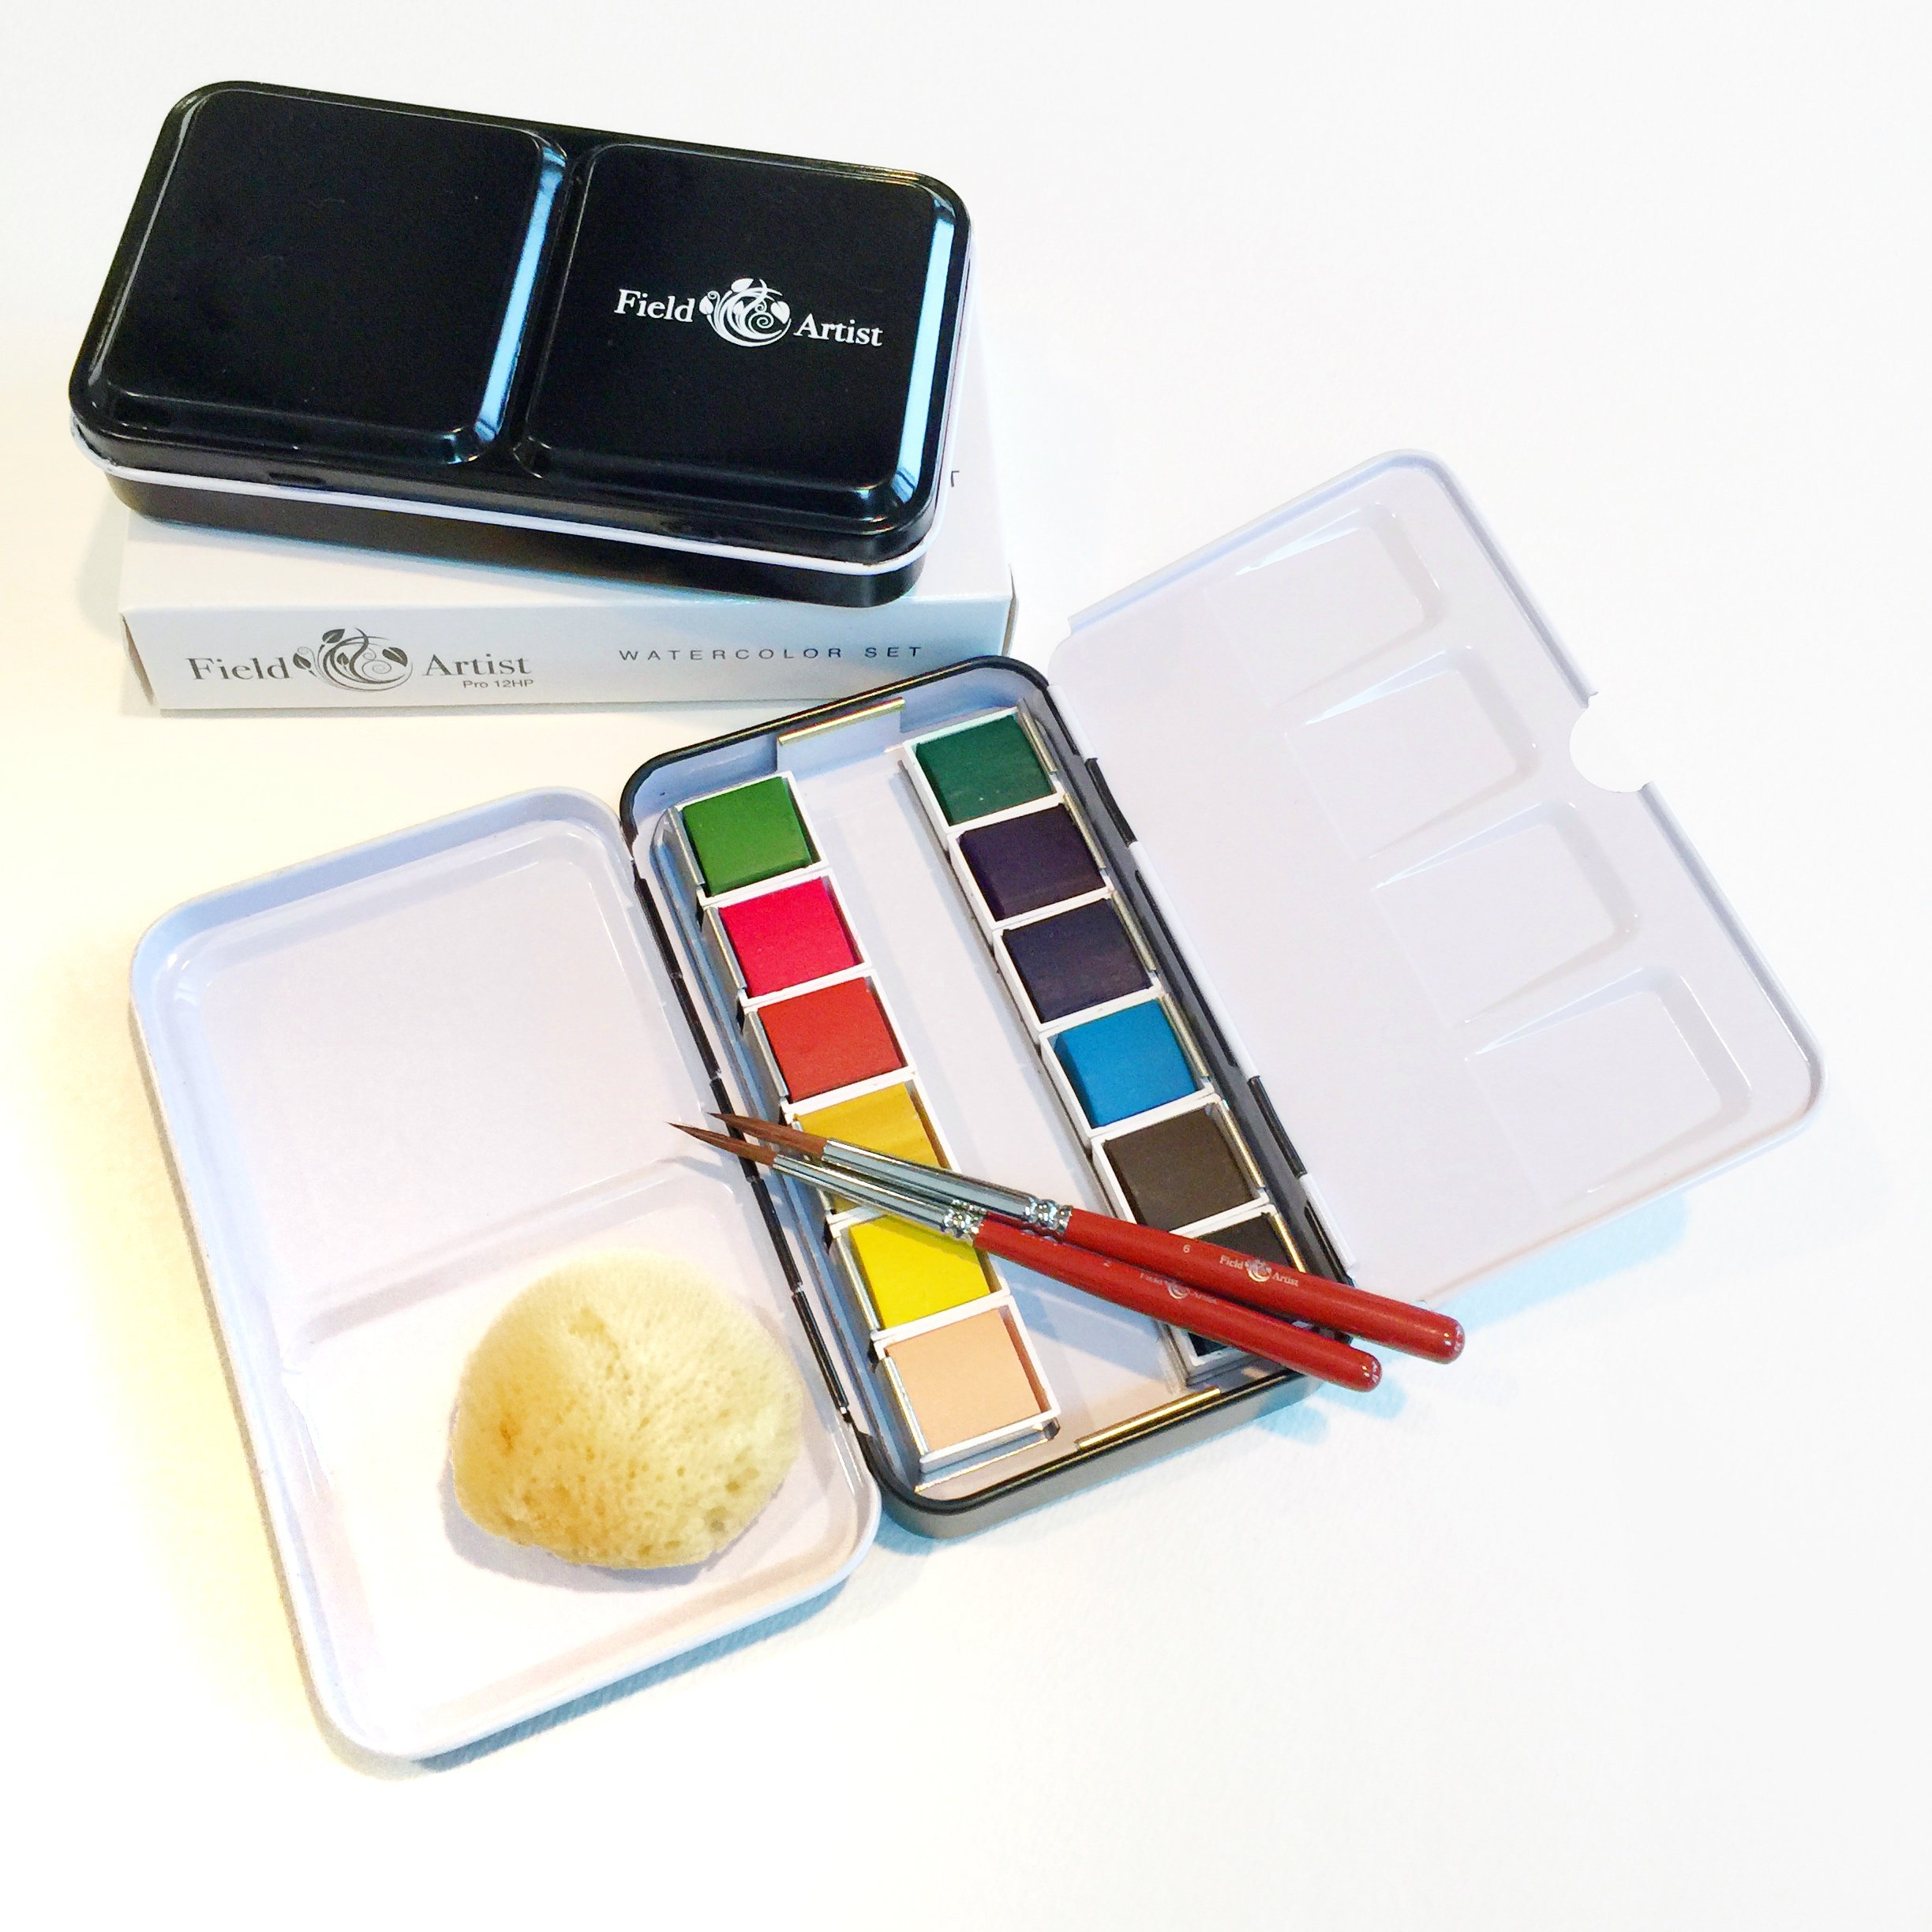 Field Artist Pro 12HP - Complete TRAVEL WATERCOLOR SET includes 12 Brilliant Half Pan Colors, 2 Custom Brushes, a Genuine Sea Sponge, a Classic Metal Field Box, all fits in your Pocket!